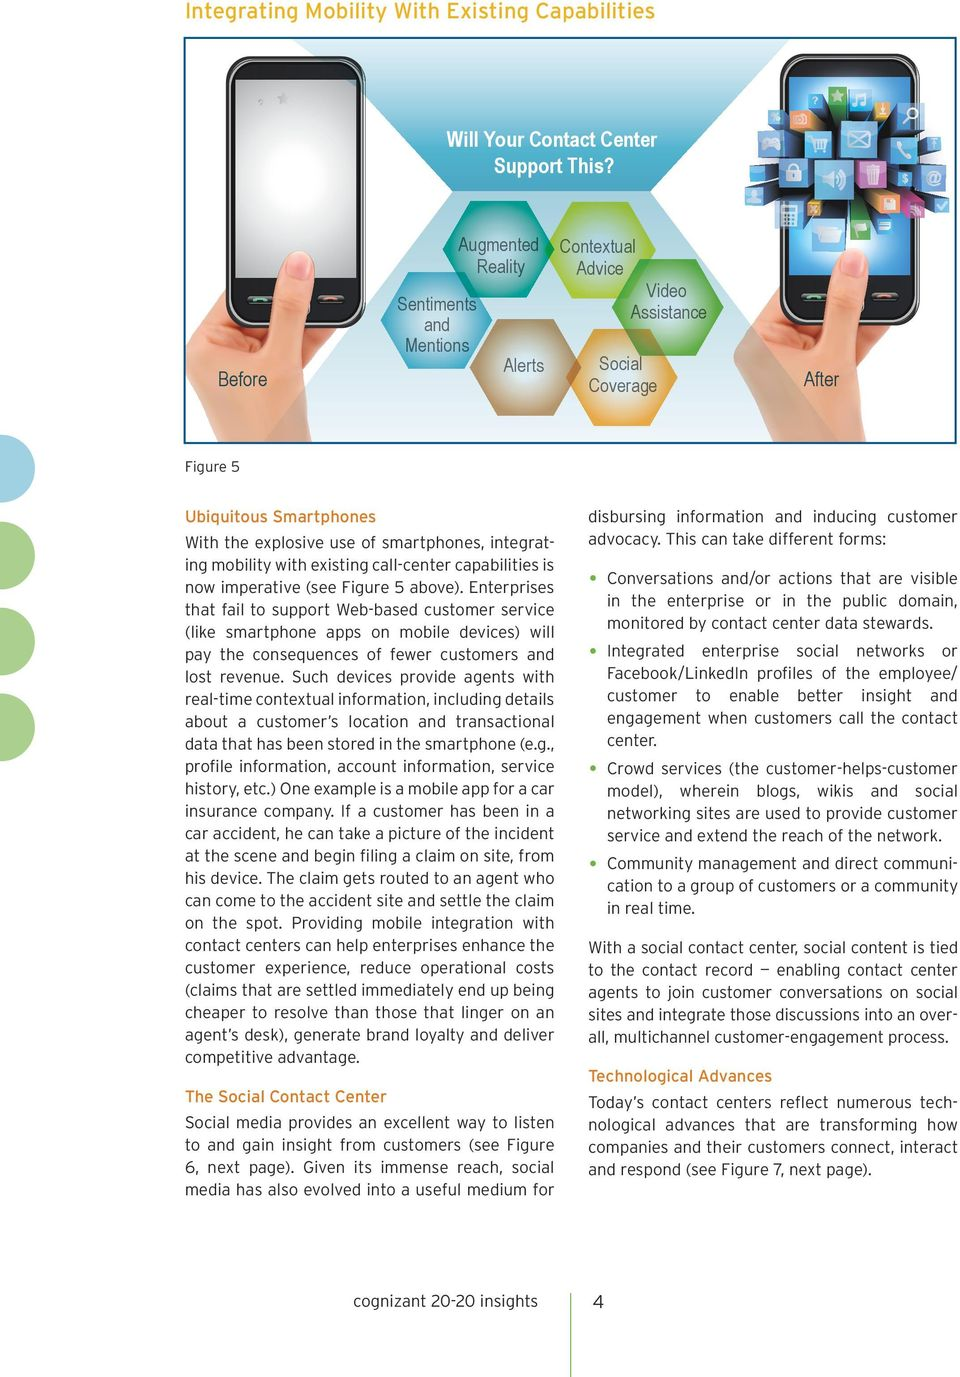 mobility with existing call-center capabilities is now imperative (see Figure 5 above).